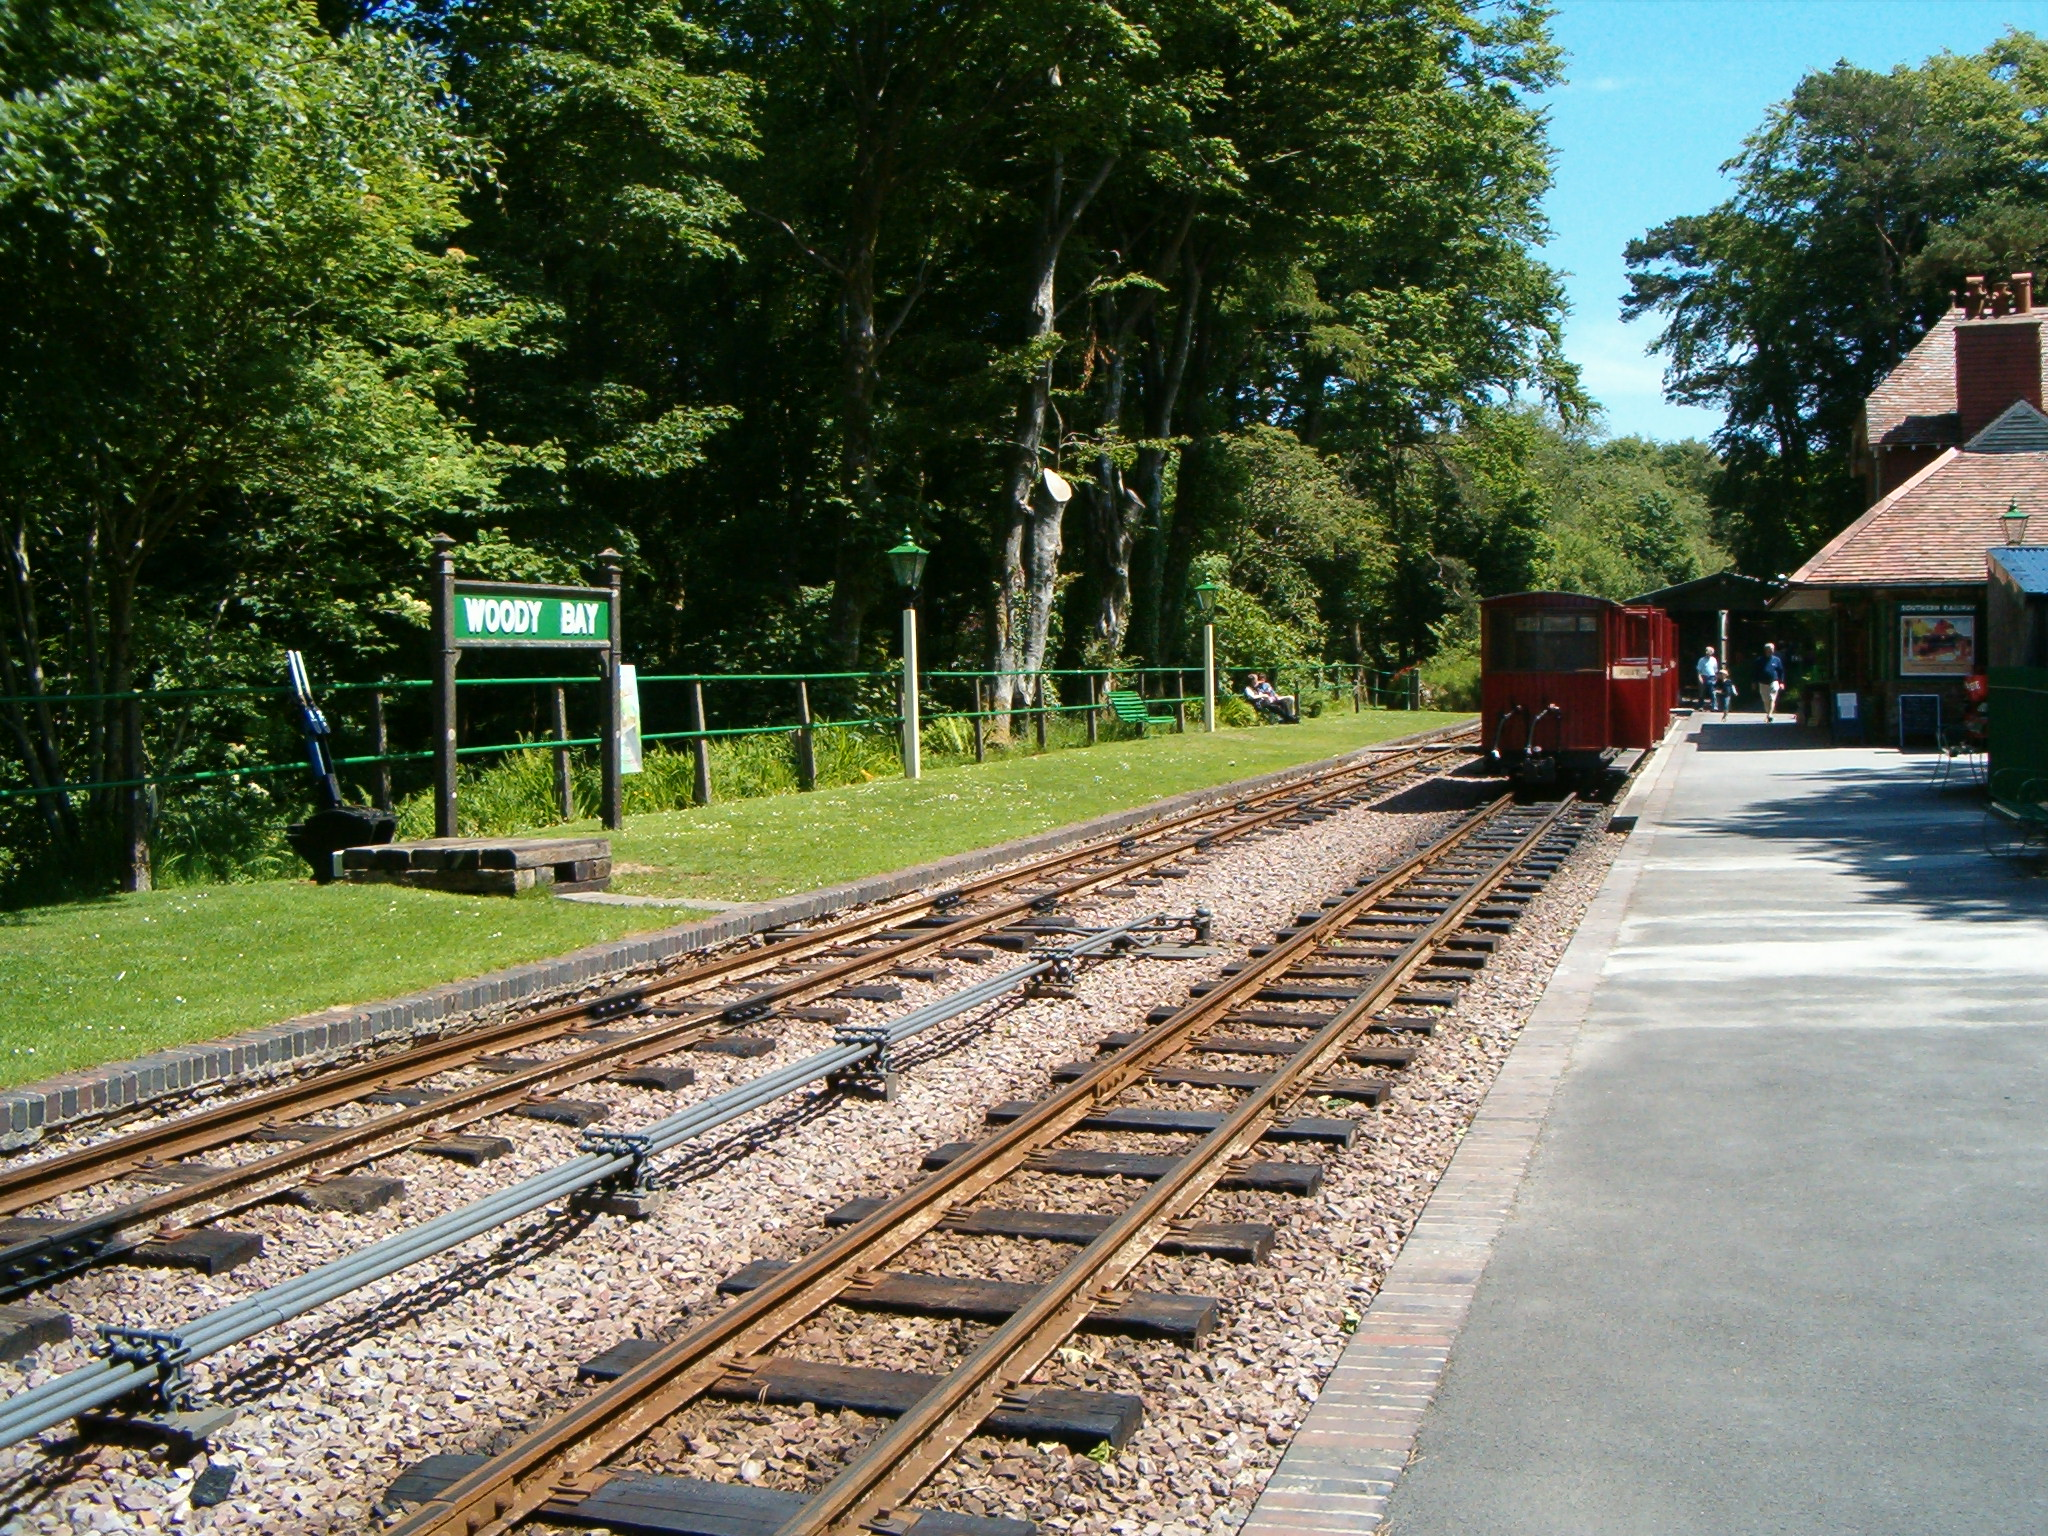 Carriages at Woody Bay